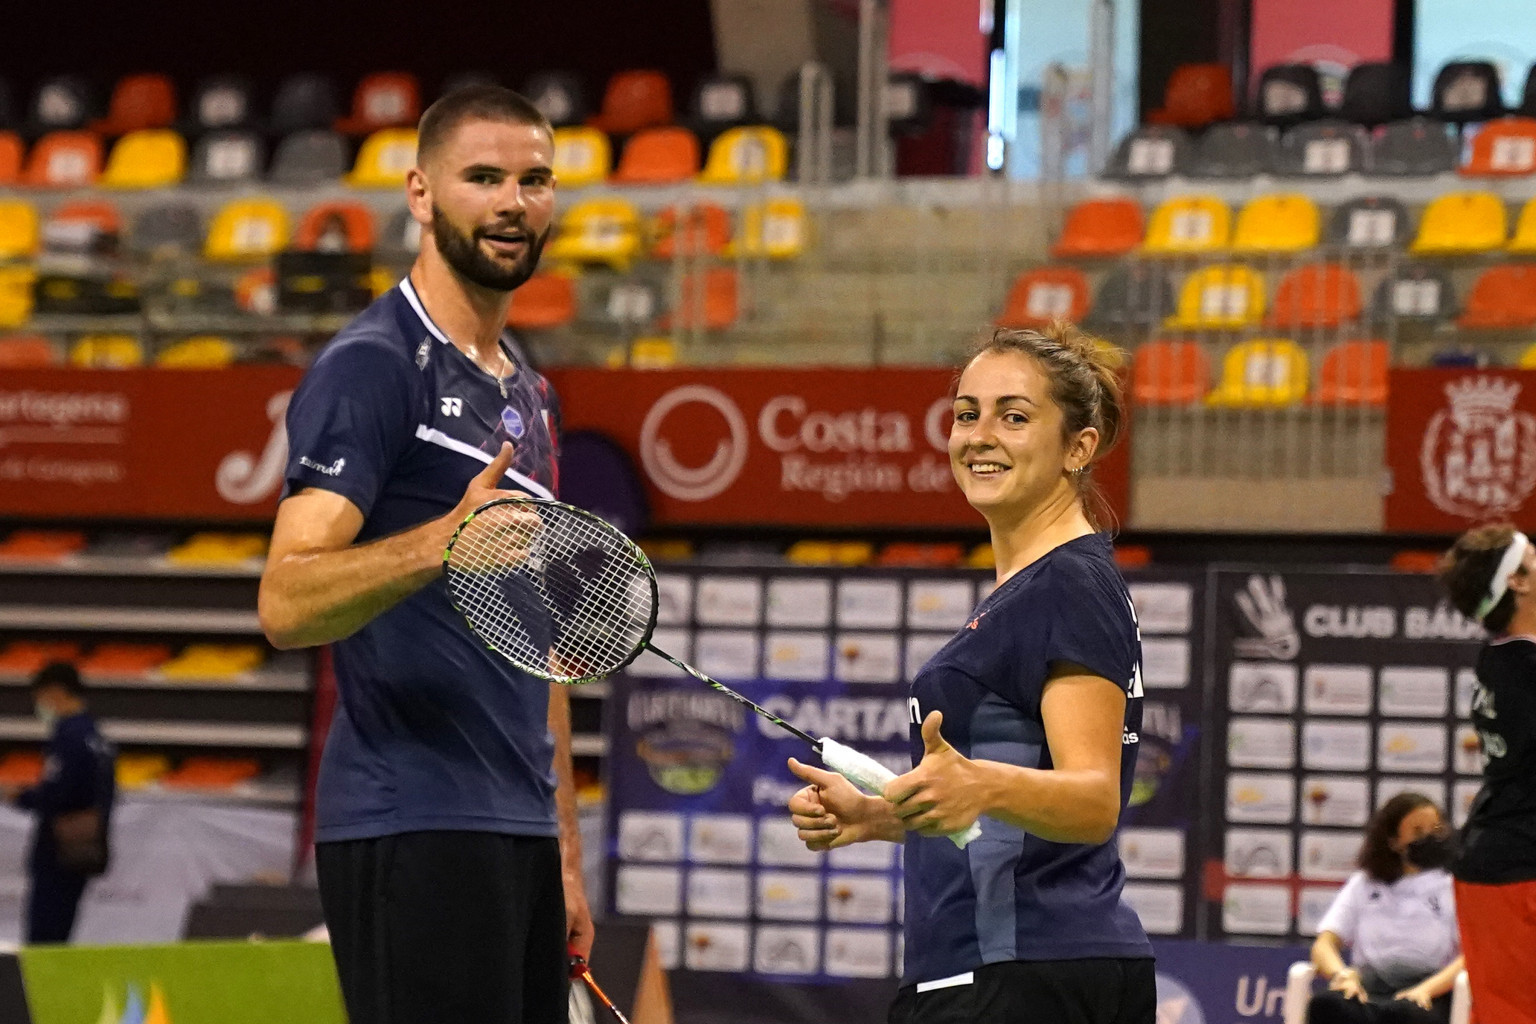 France's Lucas Mazur, left, pictured with Faustine Noel after winning the SL3-SU5 mixed doubles title, won three golds at the Spanish Para Badminton International ©Alan Spink/BWF